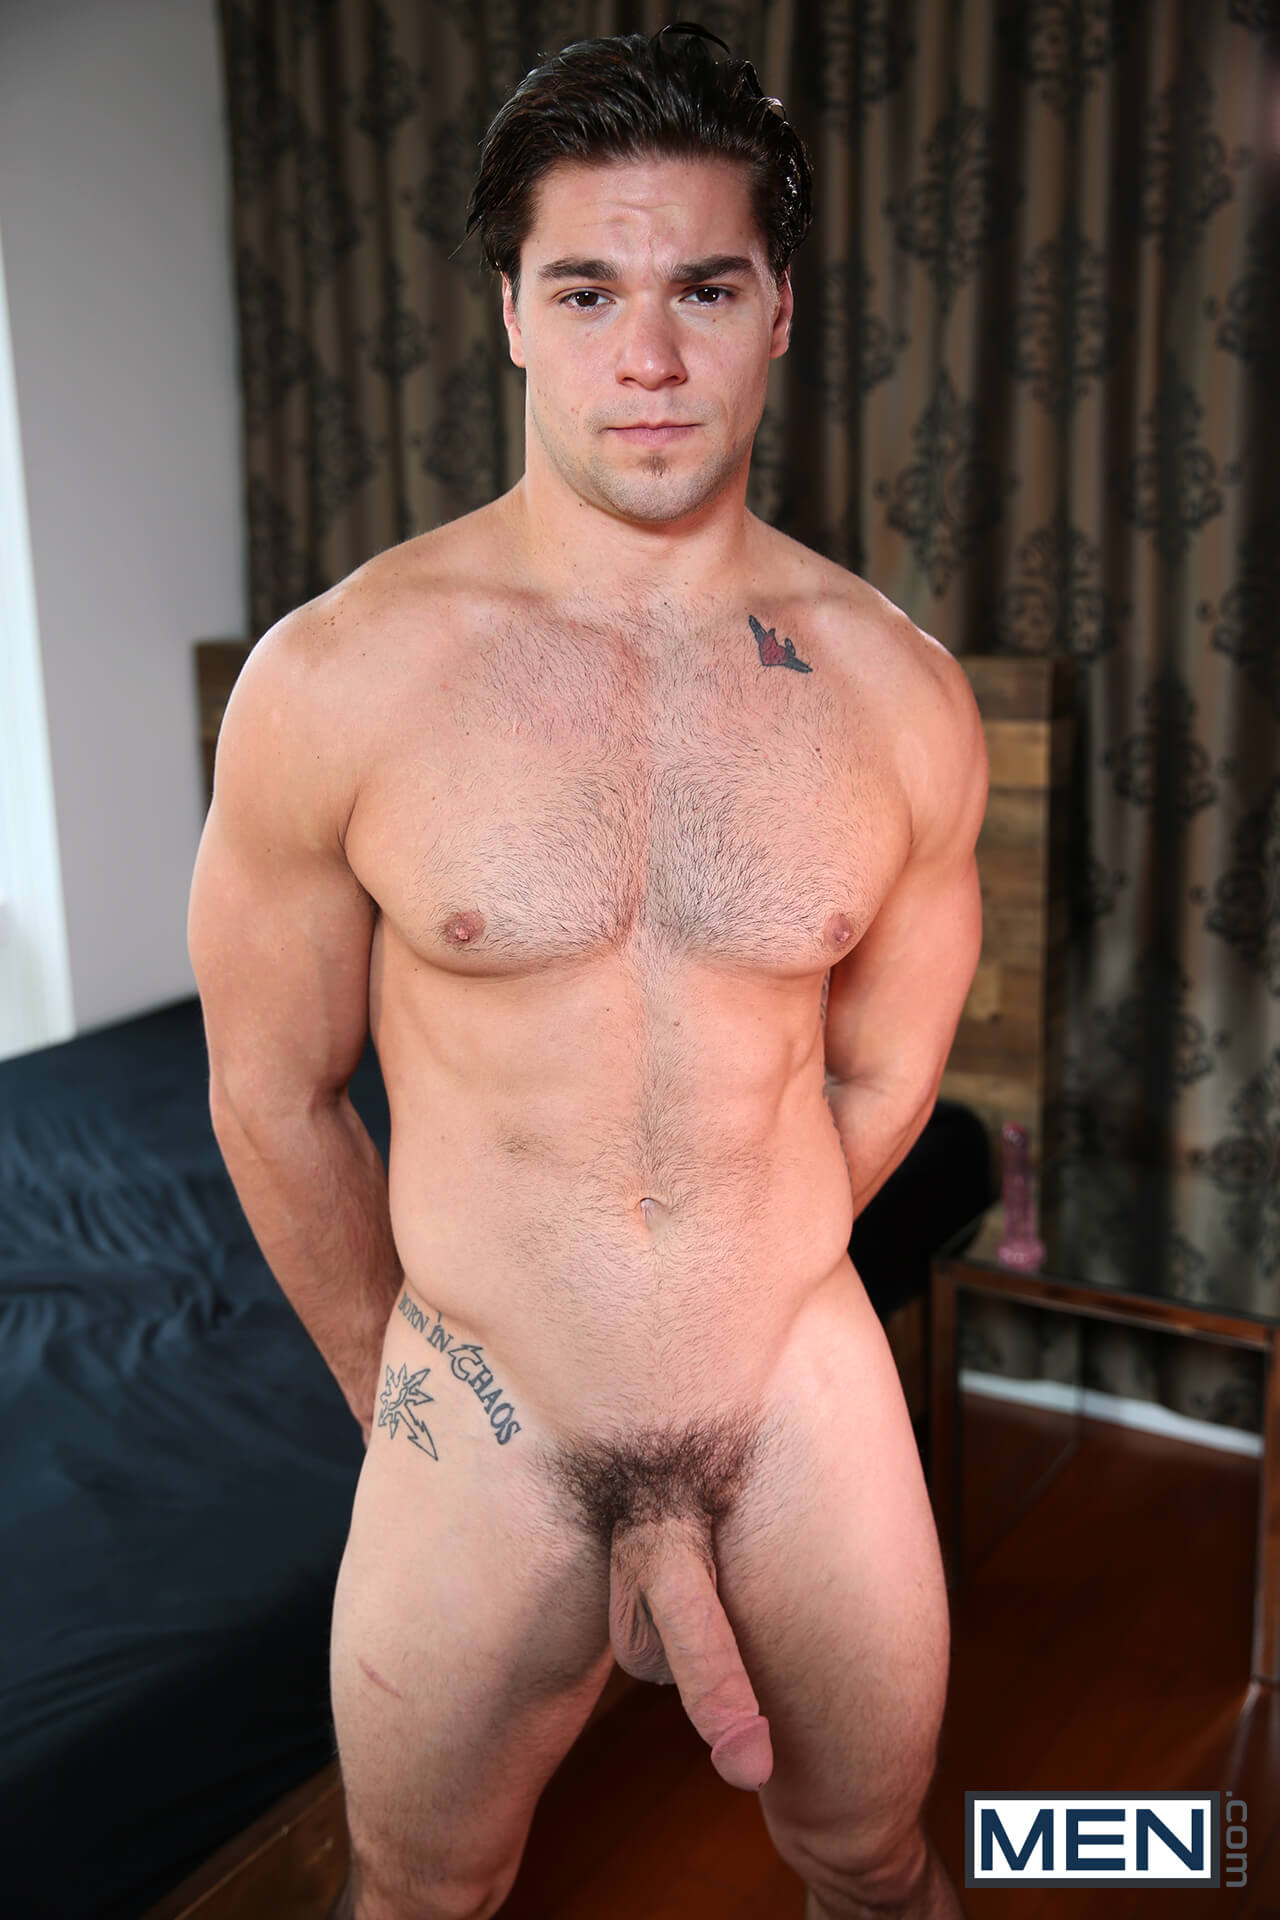 men str8 to gay strap on aspen will braun gay porn blog image 8